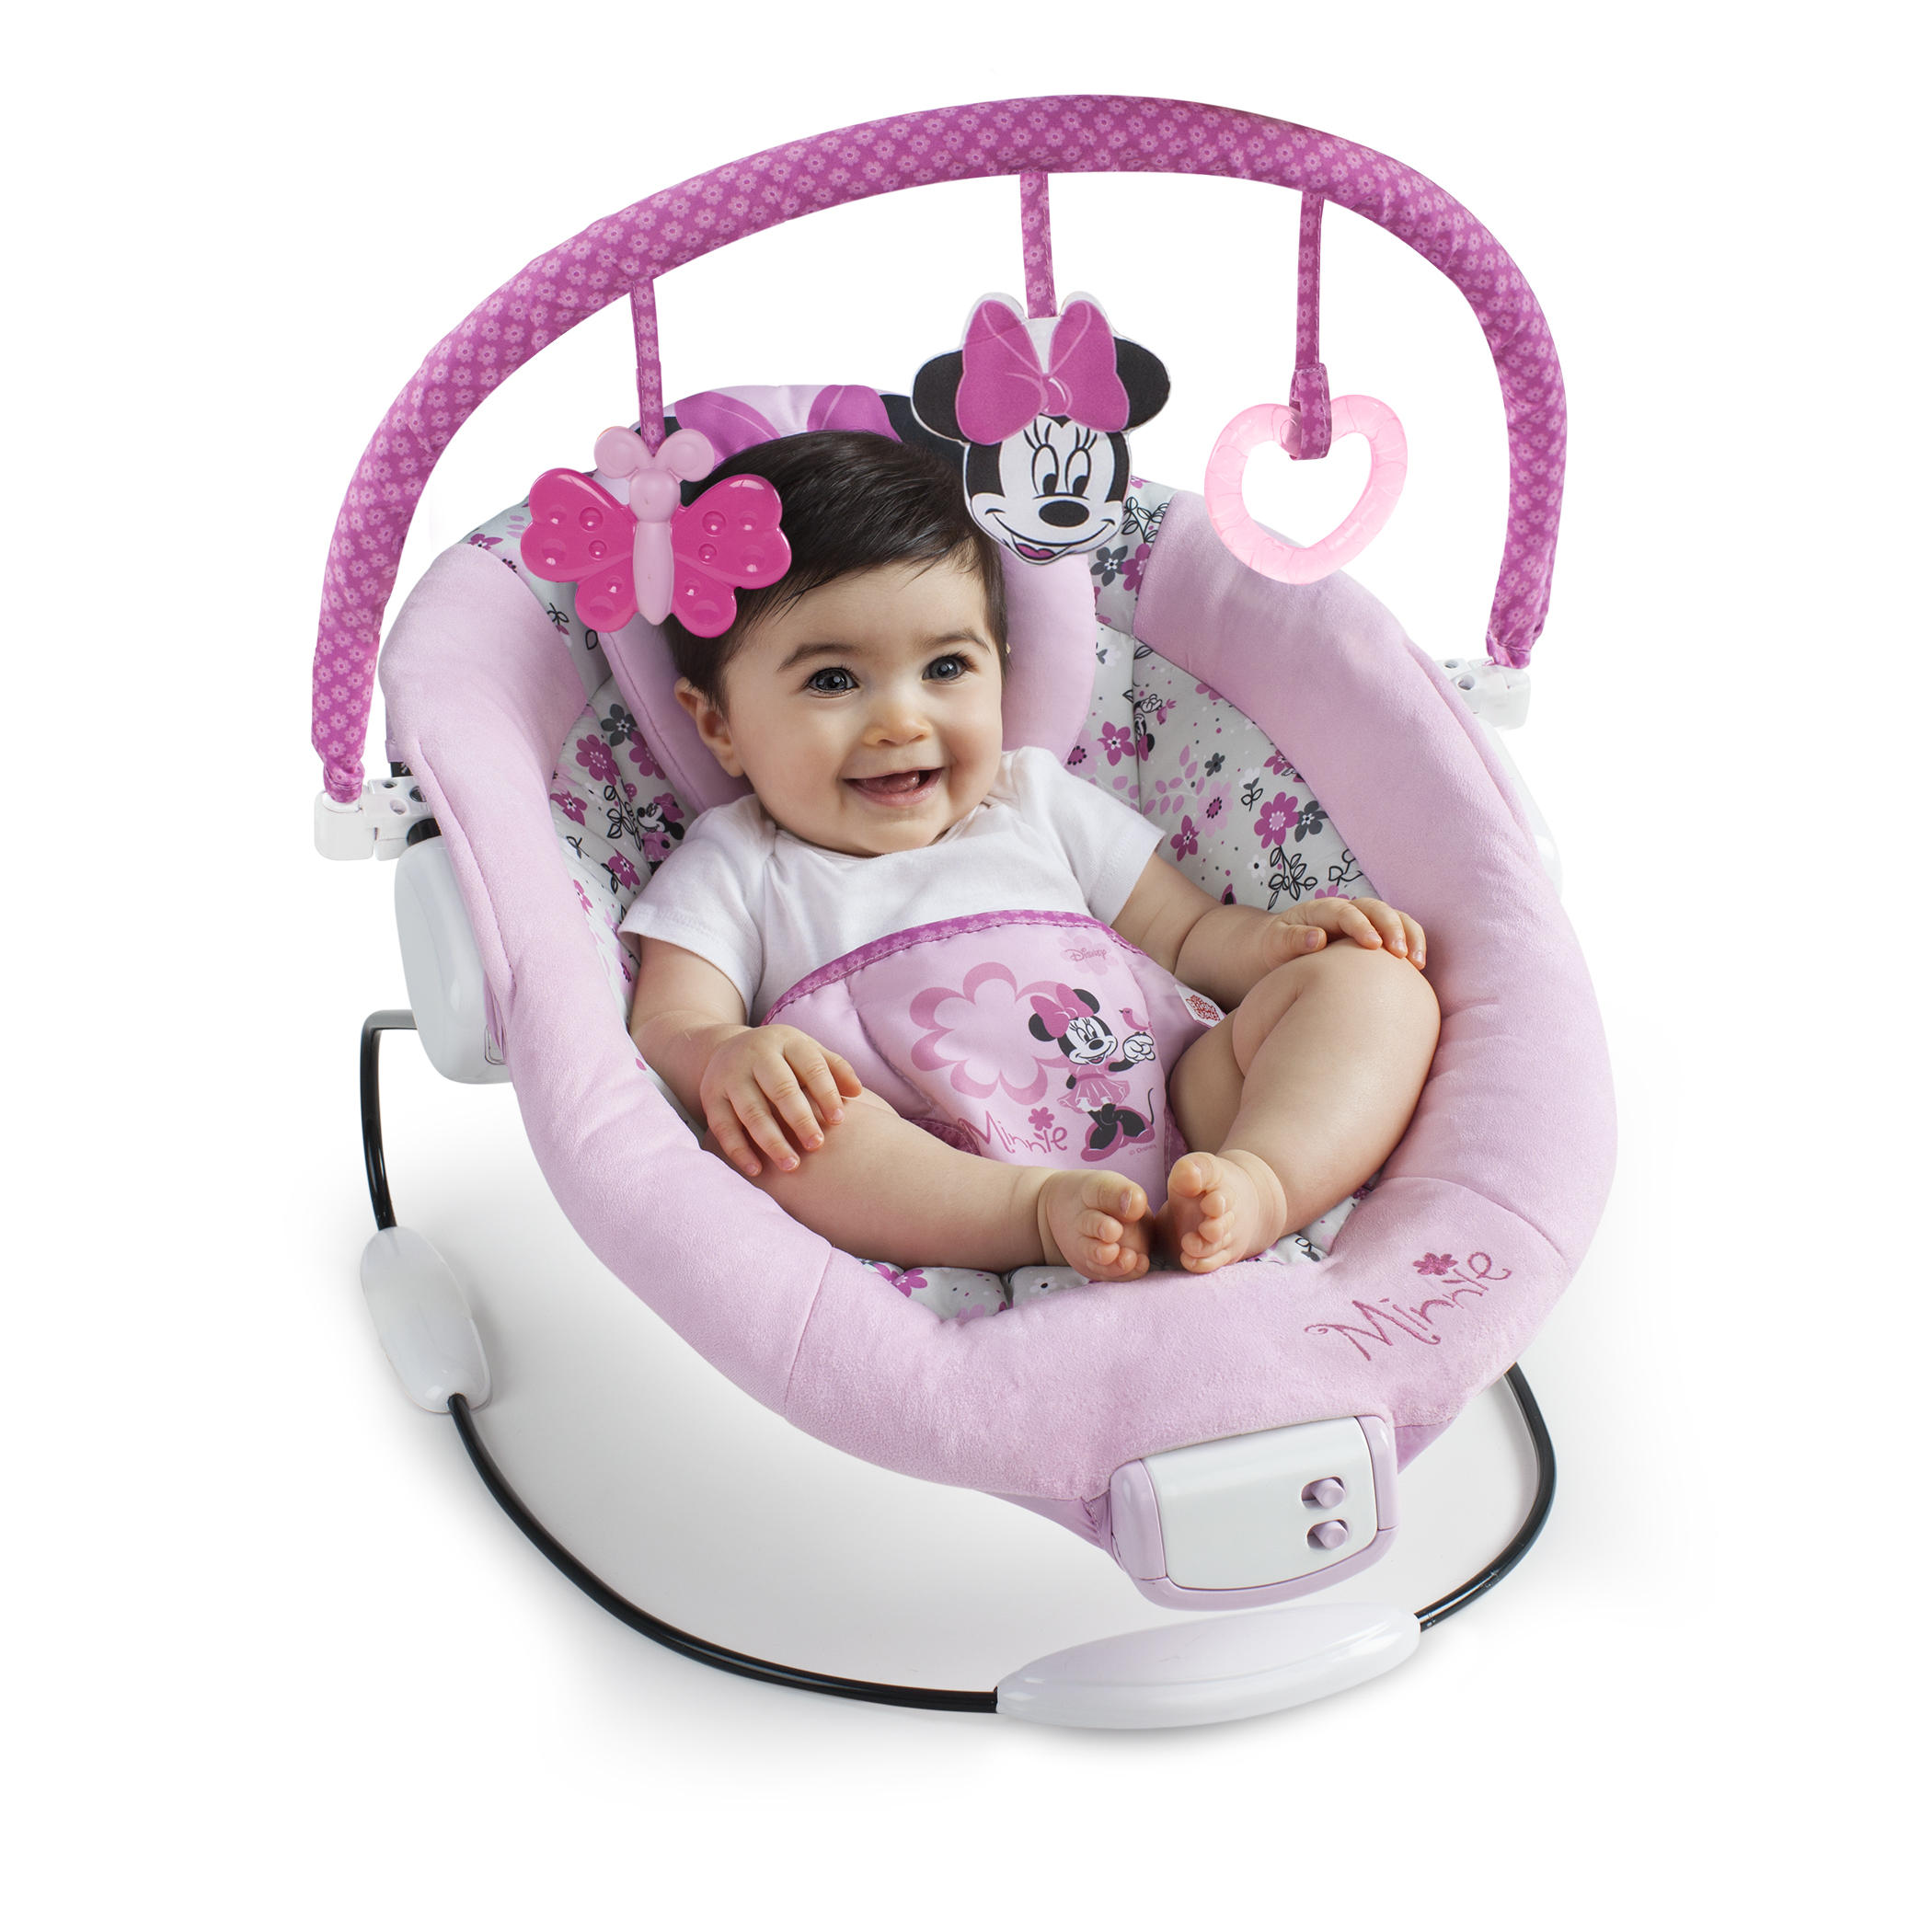 Bouncer Baby Minnie Mouse Garden Delights Bouncer